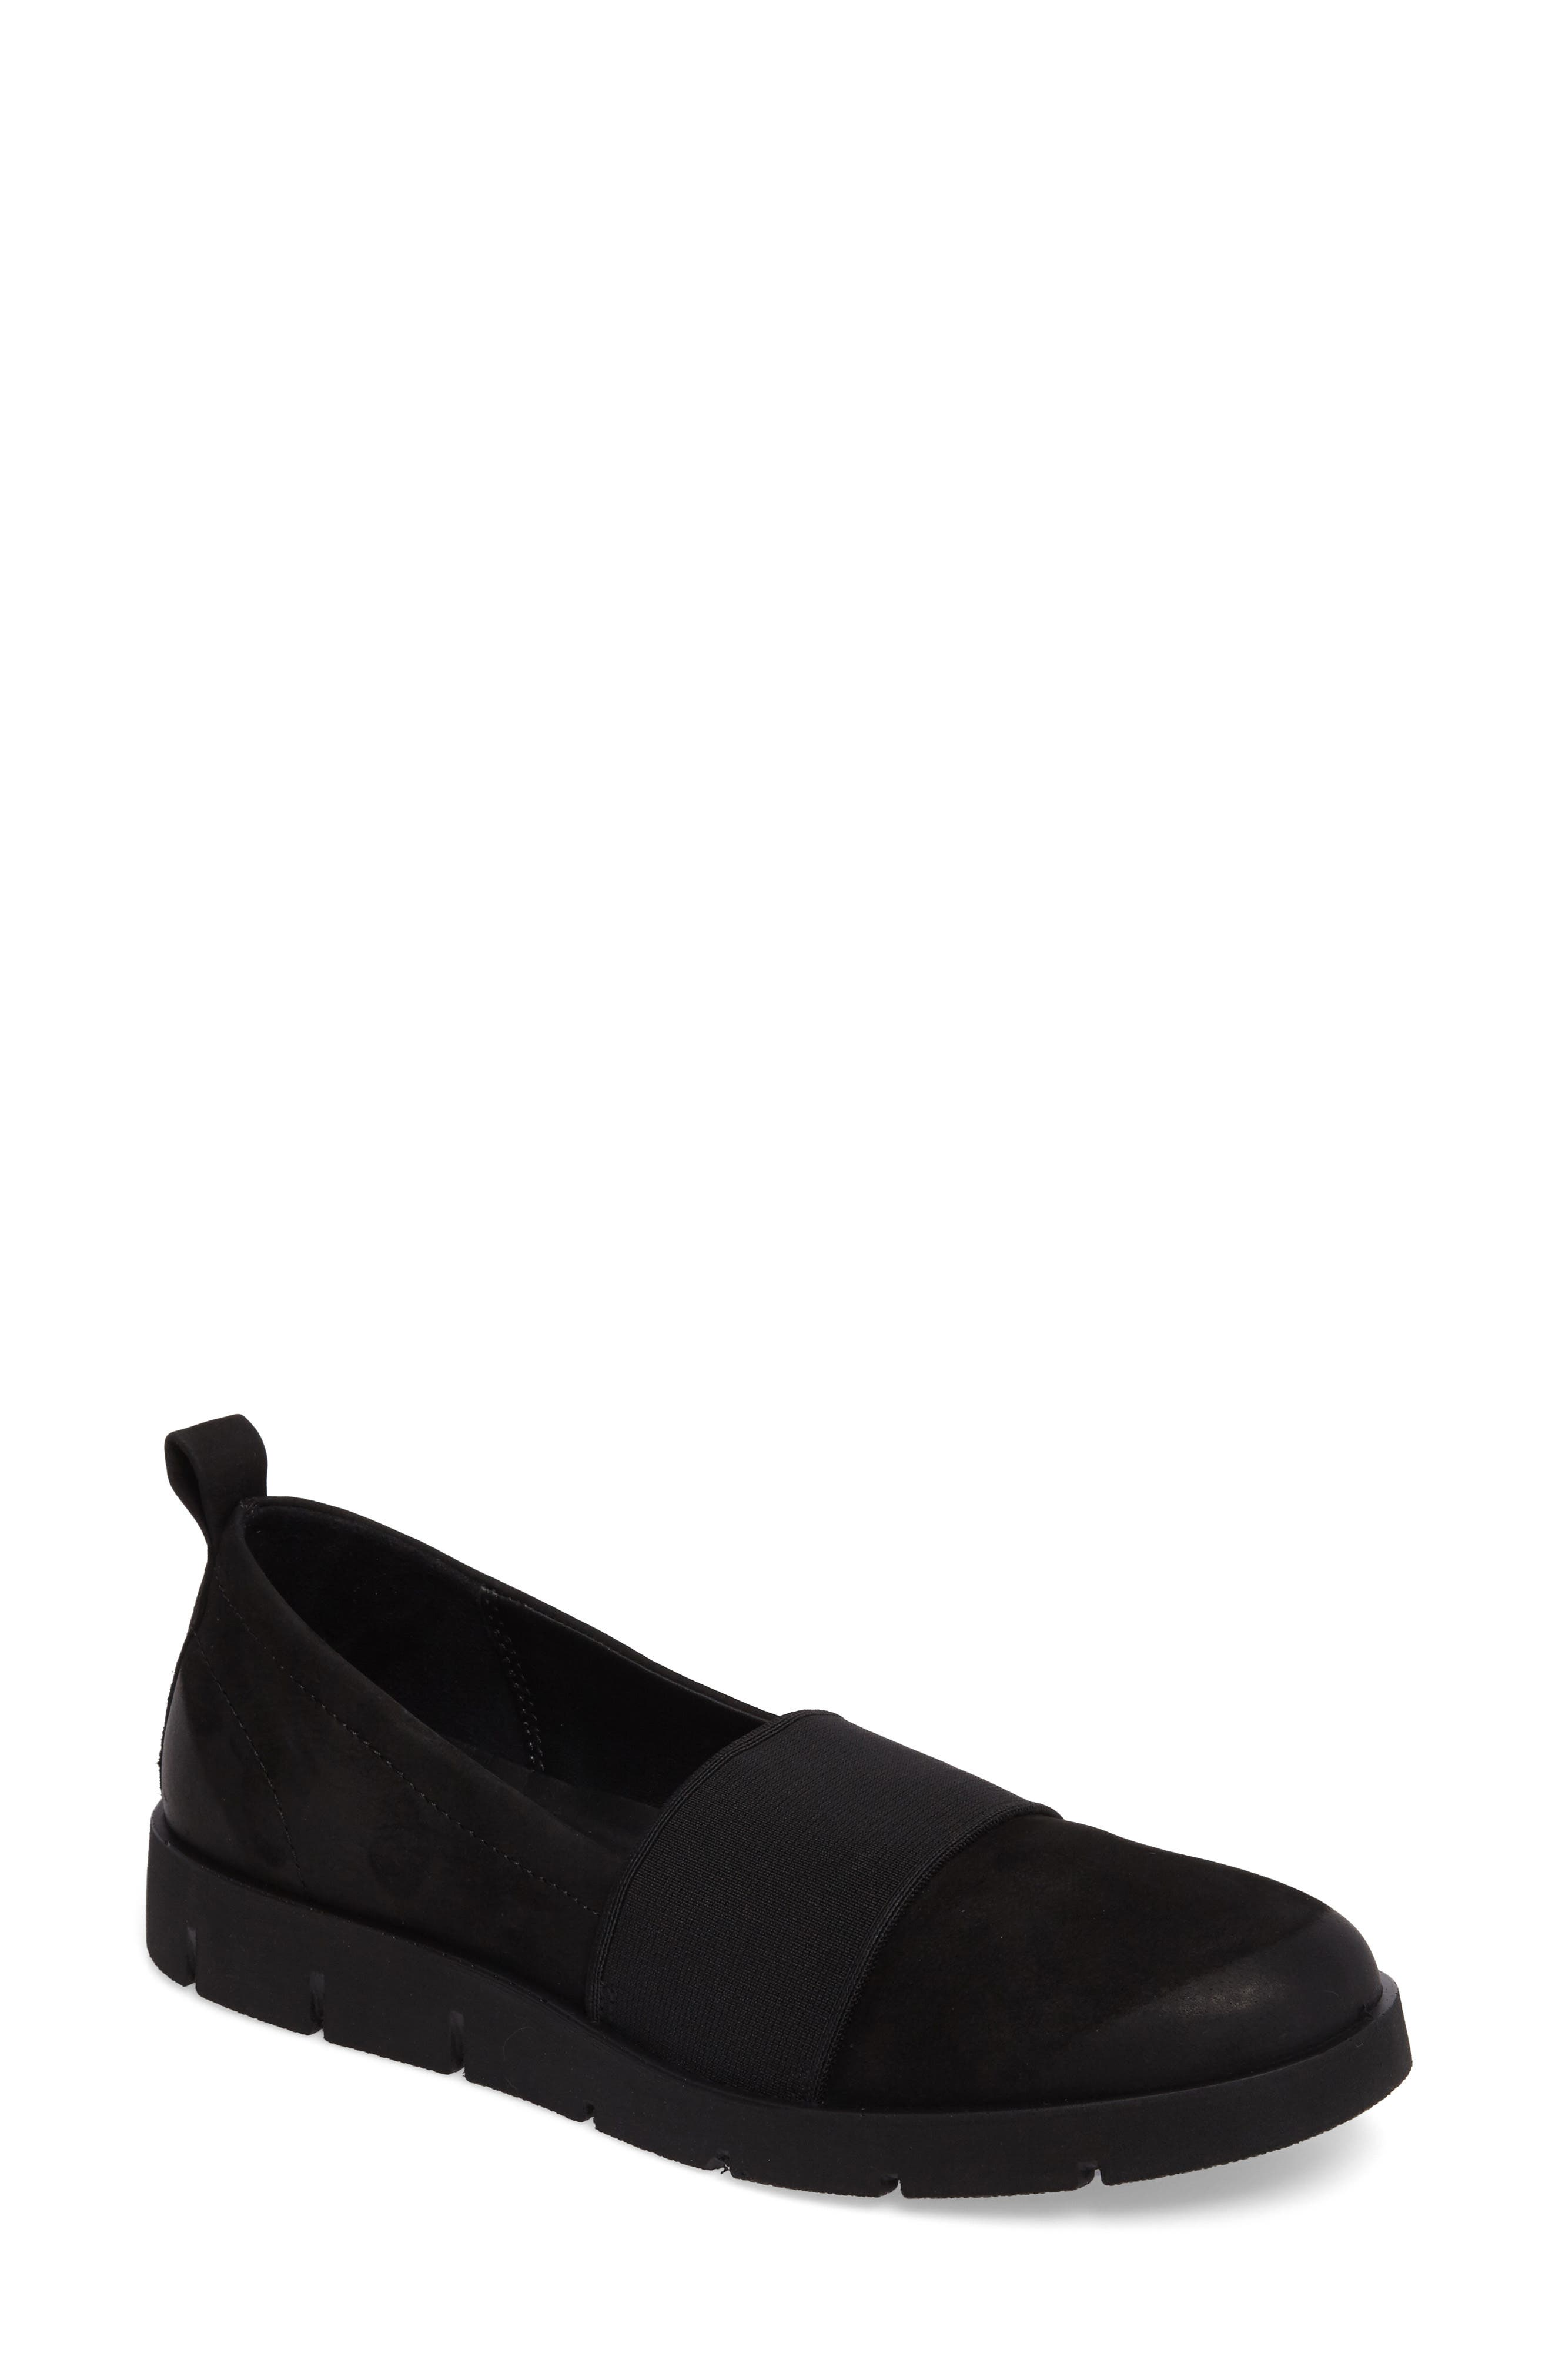 Bella Slip-On Sneaker,                         Main,                         color, 001